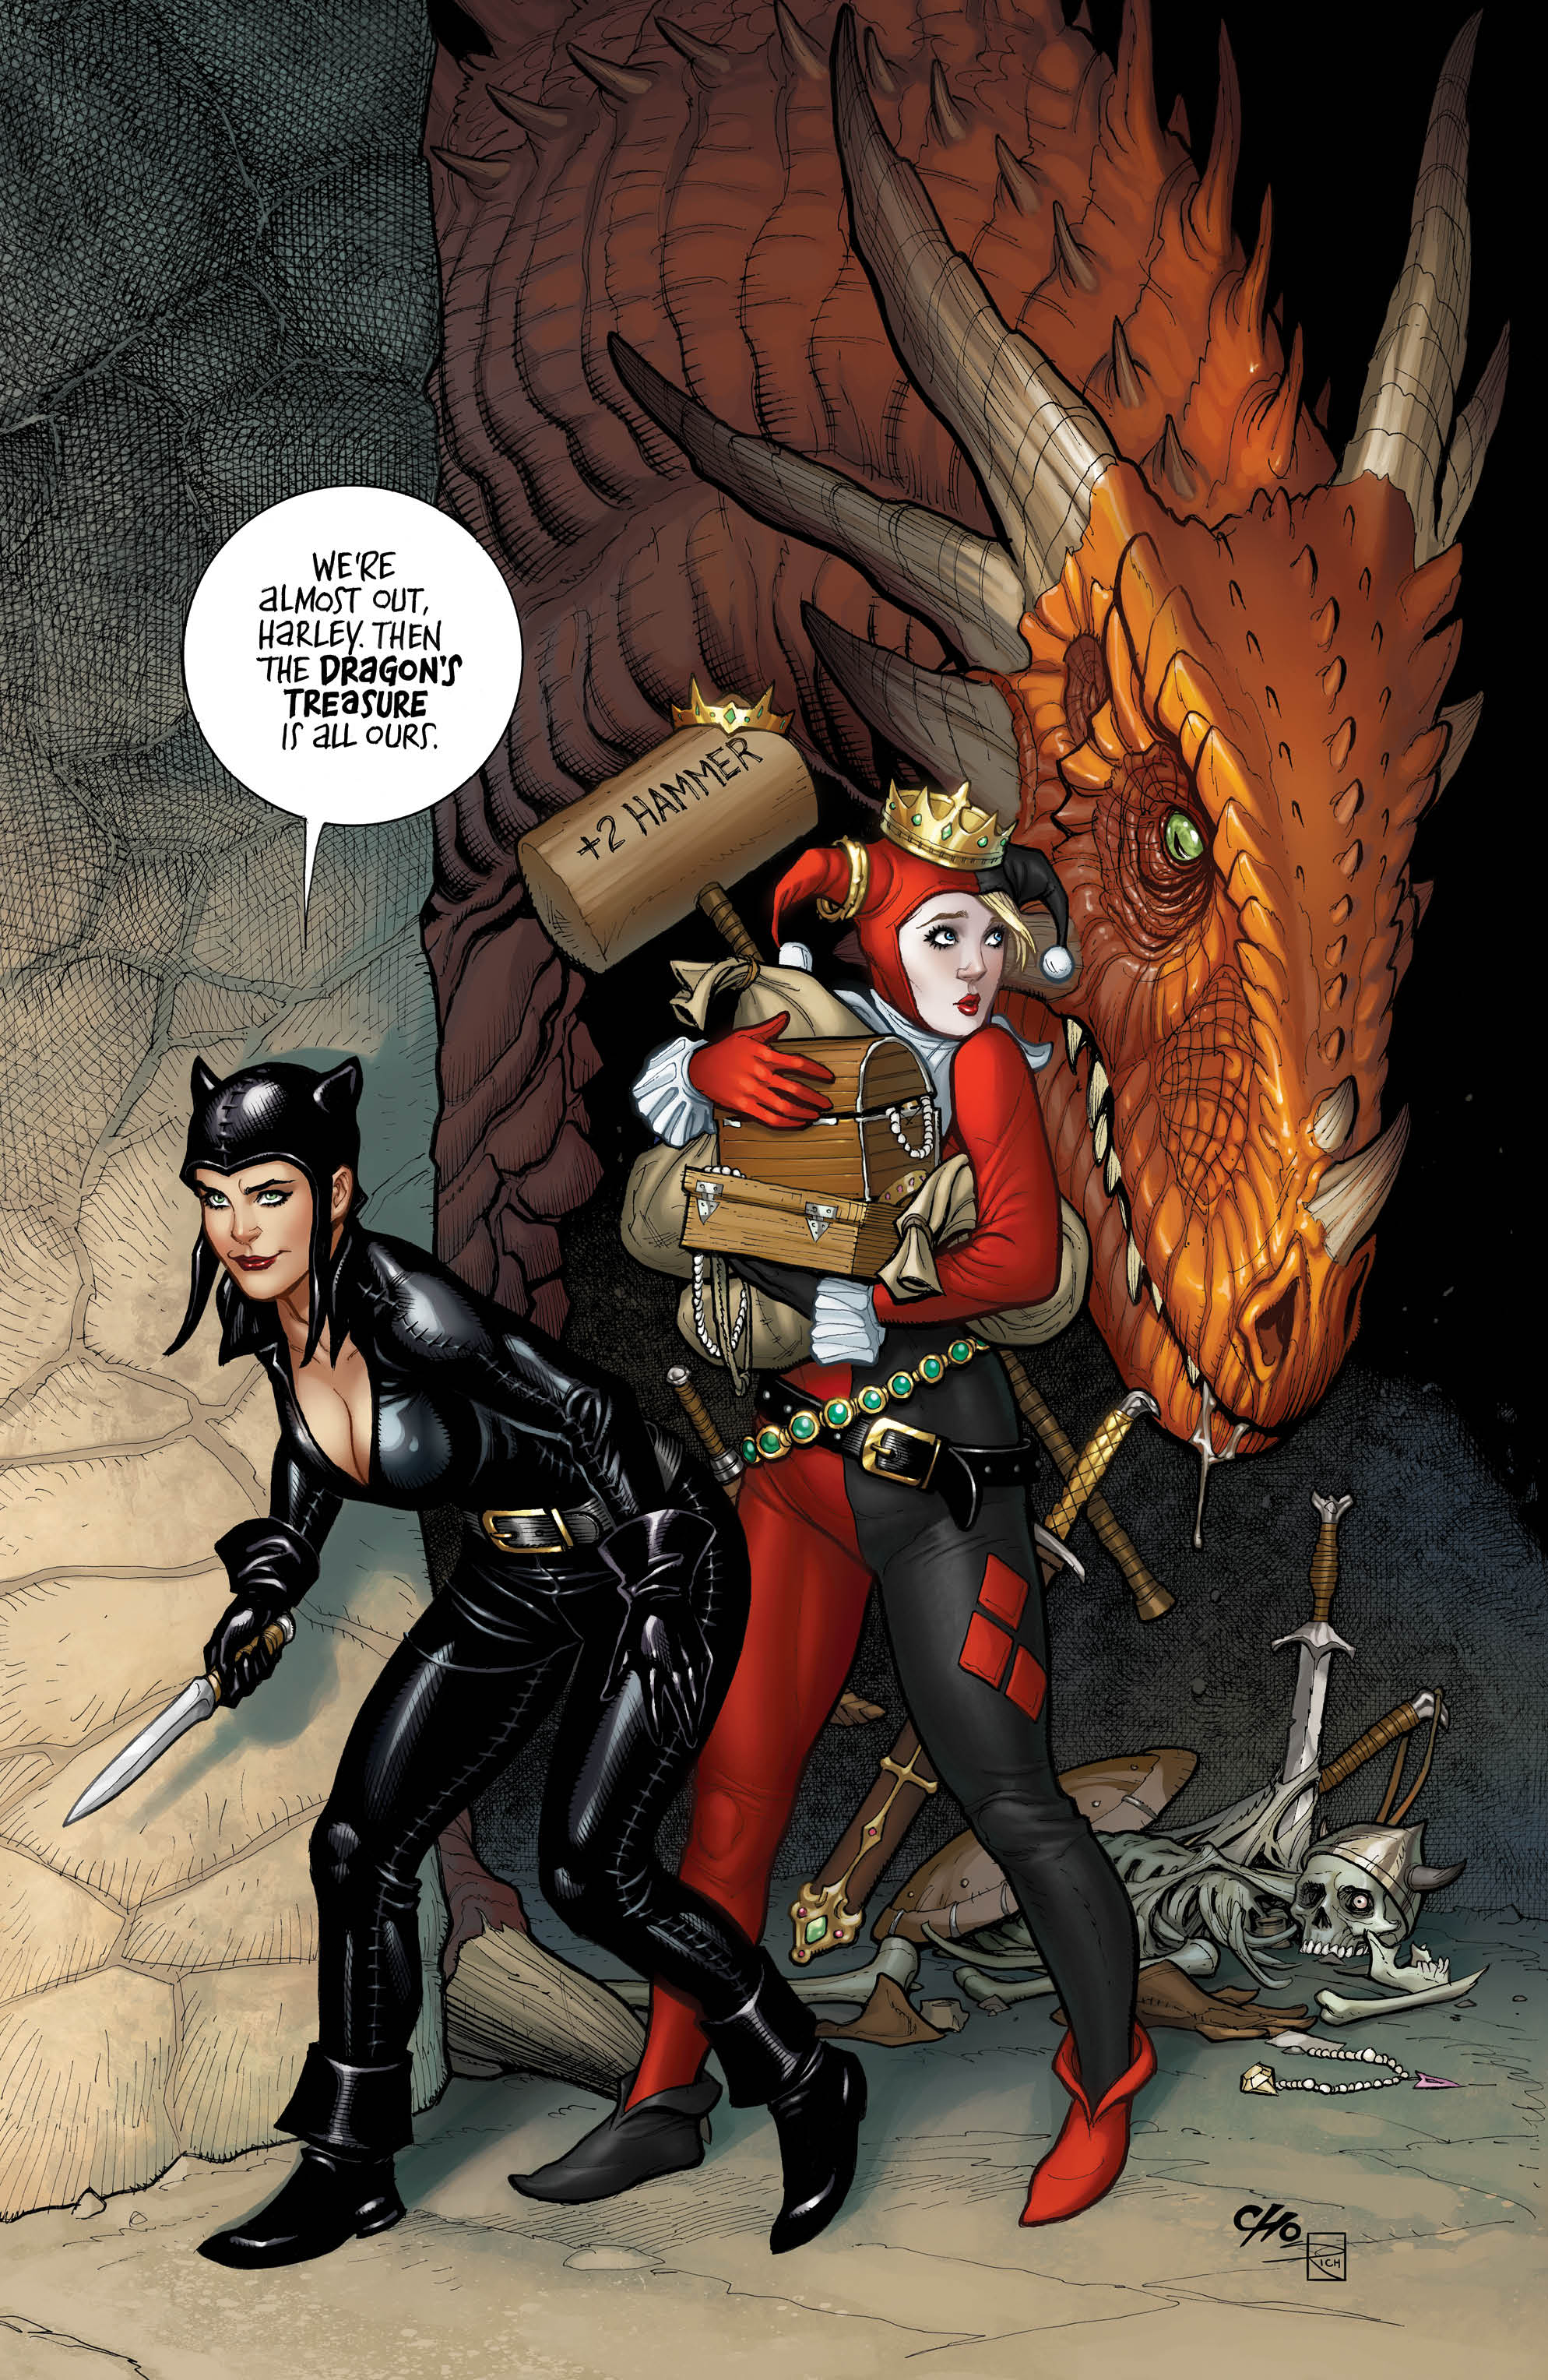 Tied to a stake with a Dungeons and Dragons inspired Catwoman, Harley can feel the heat begin to rise as her one-time friend Tina stokes the fire. Will Harley be able to roll a natural 20 on her escape artist skill check to escape the restraints or will her metaphorical chestnuts roast on this open fire? What do you mean she never took that skill? She has experience escaping from Arkham Asylum all of the time! Hopefully, she has more than twelve percent of a plan, because, if she fails, the entire world will be doomed to this renaissance fair madness.